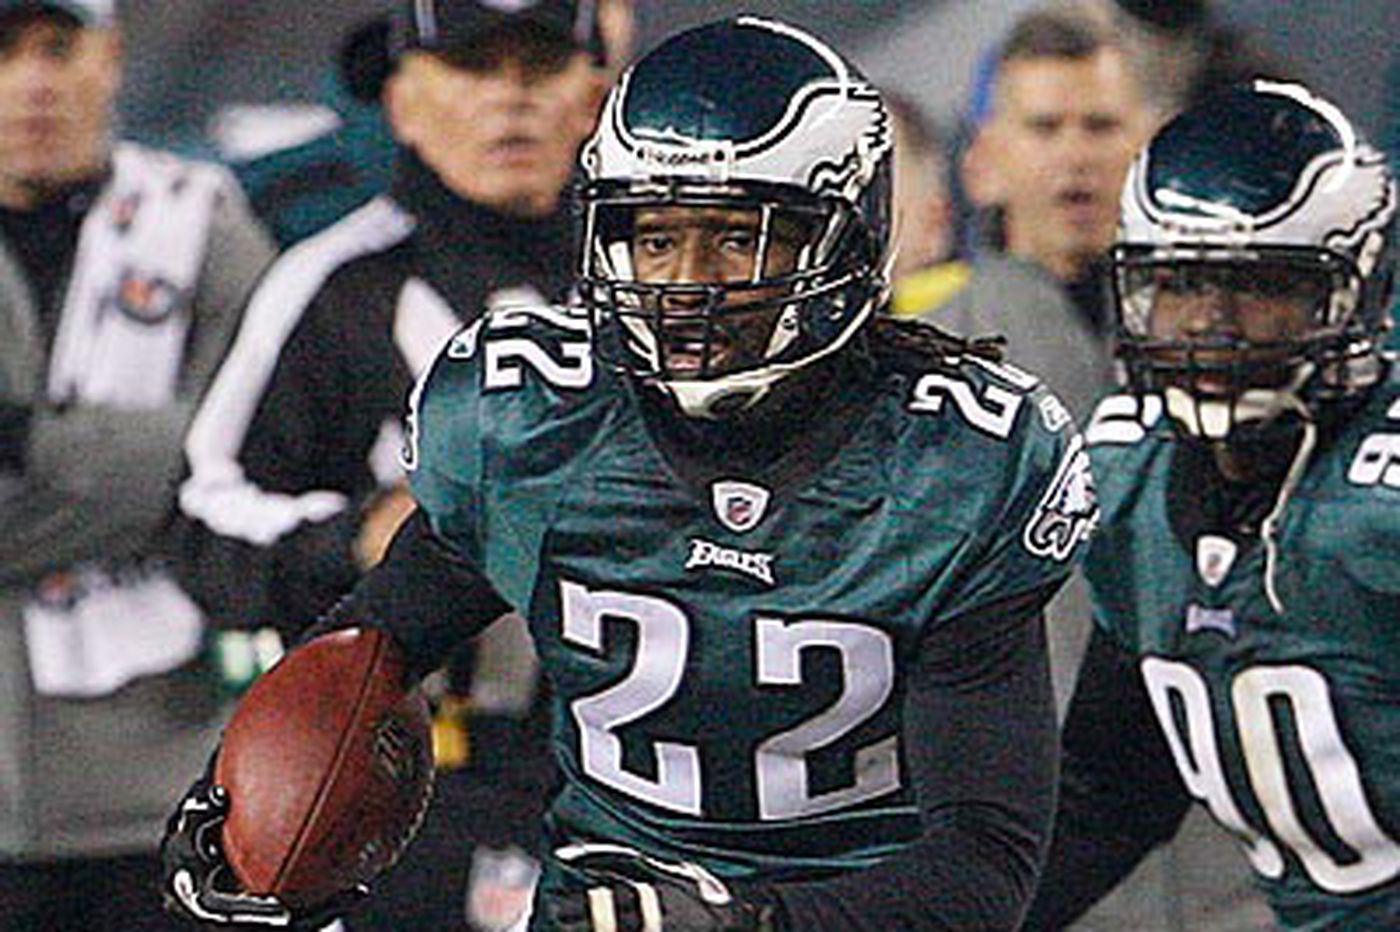 Eagles Notes: Eagles' Samuel misses practice with sore knee